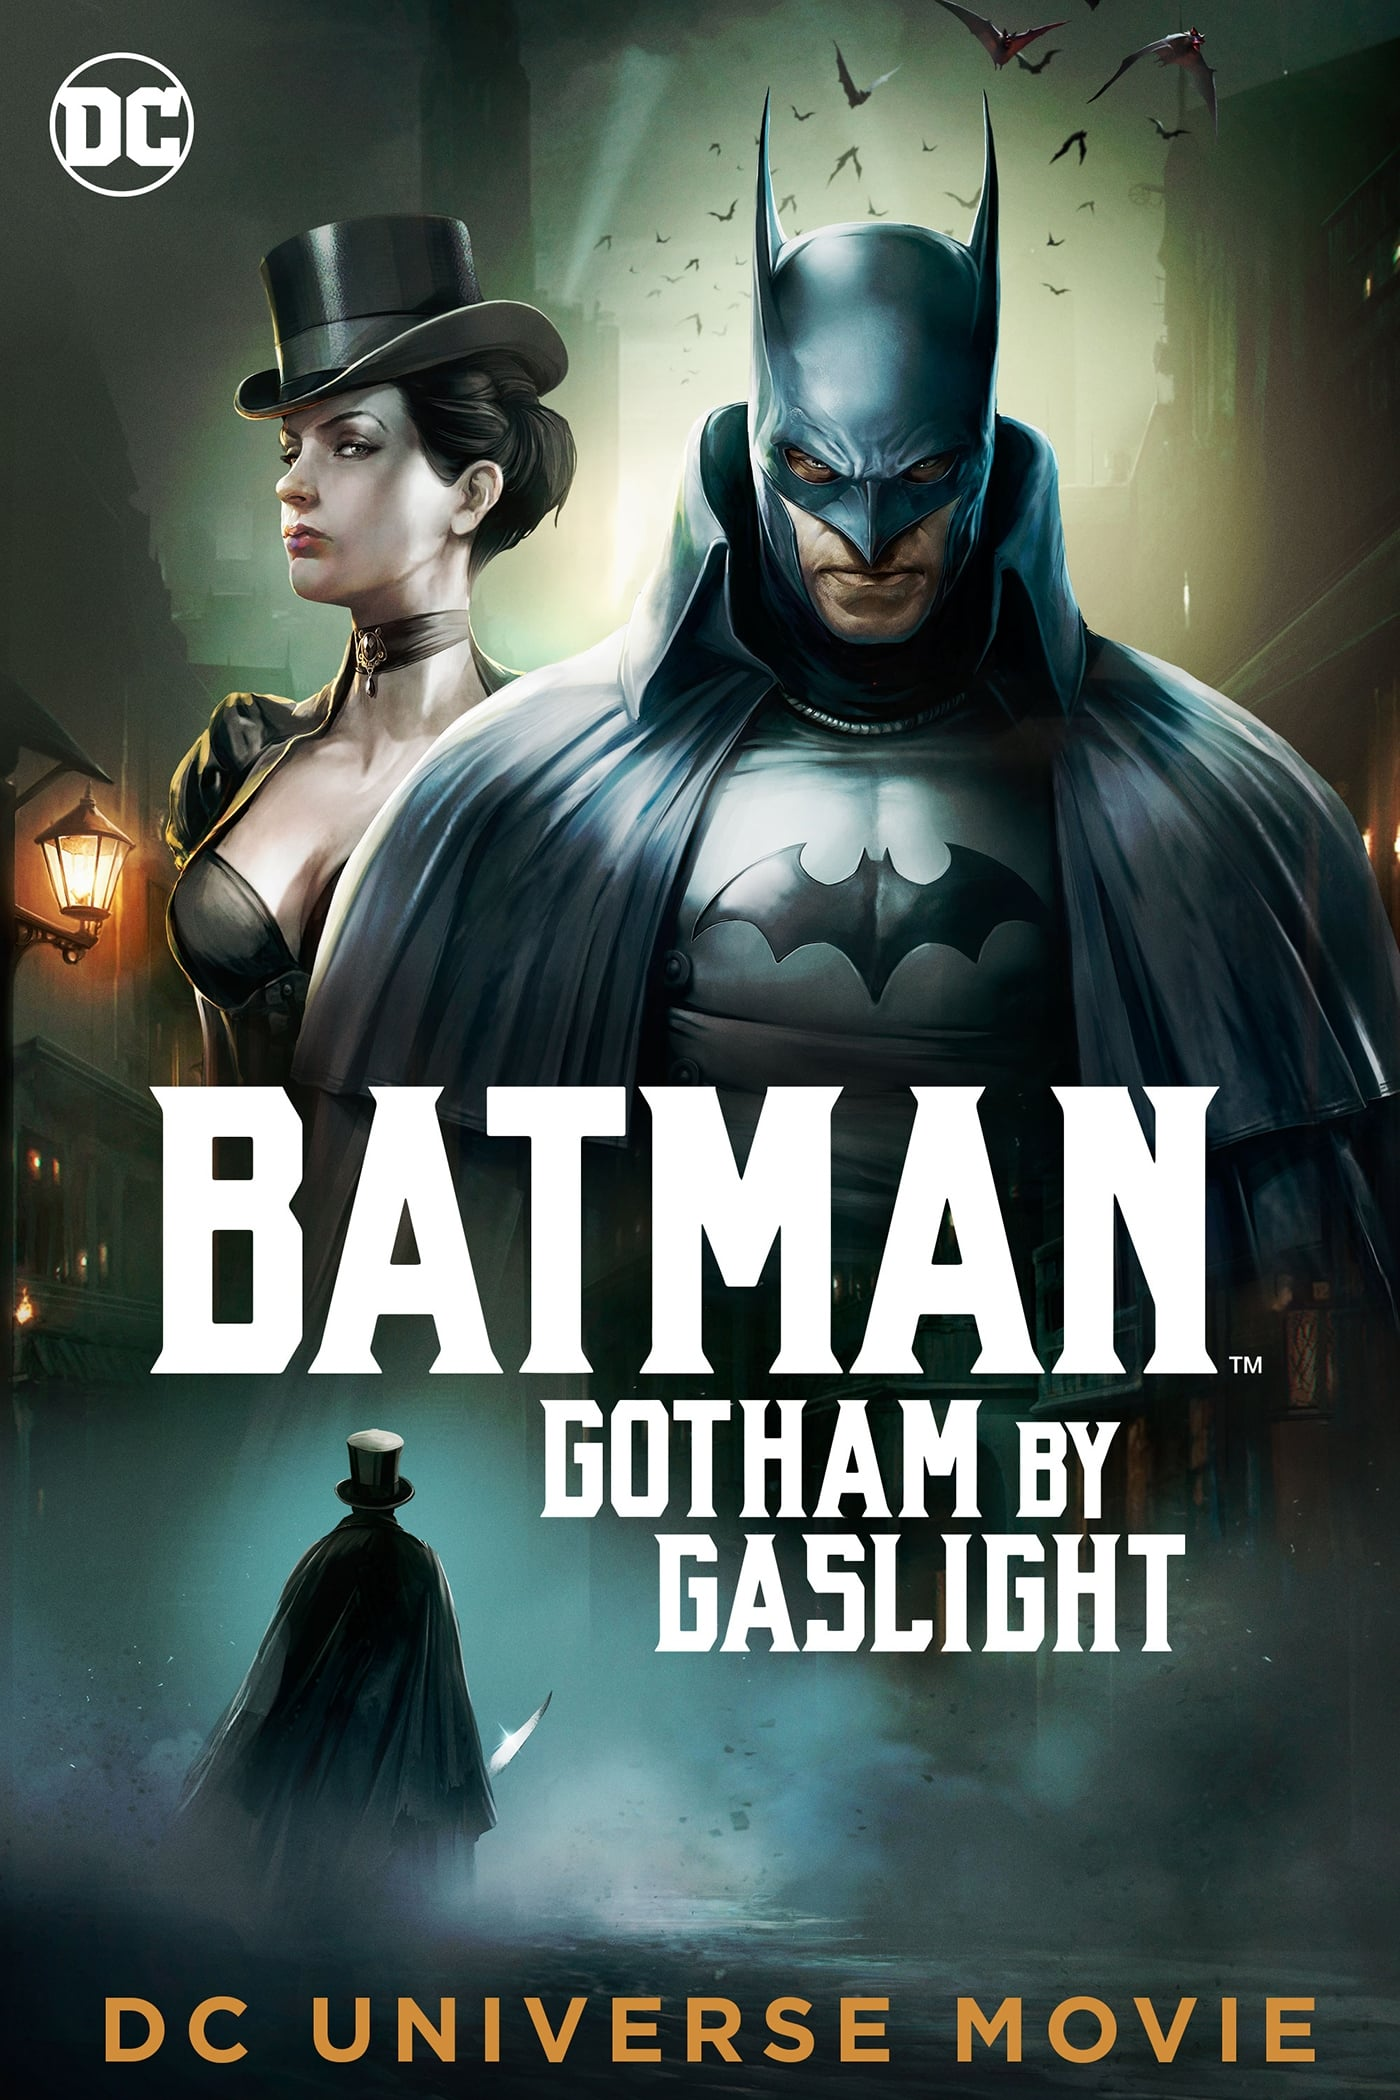 Assistir Batman: Gotham by Gaslight Legendado Online Legendado 1080p